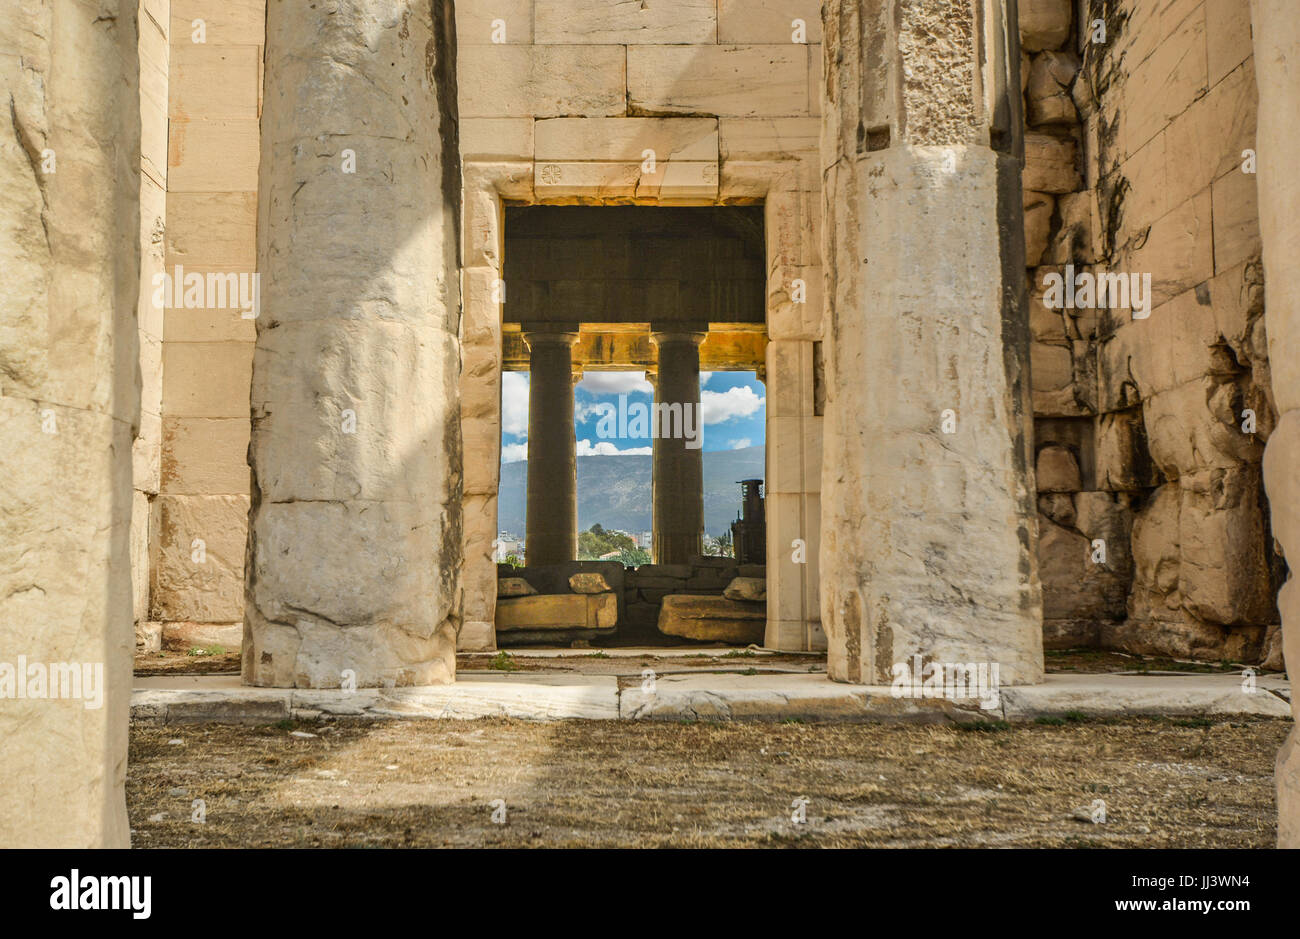 The Temple of Hephaestus in the ancient city of Athens Greece - Stock Image